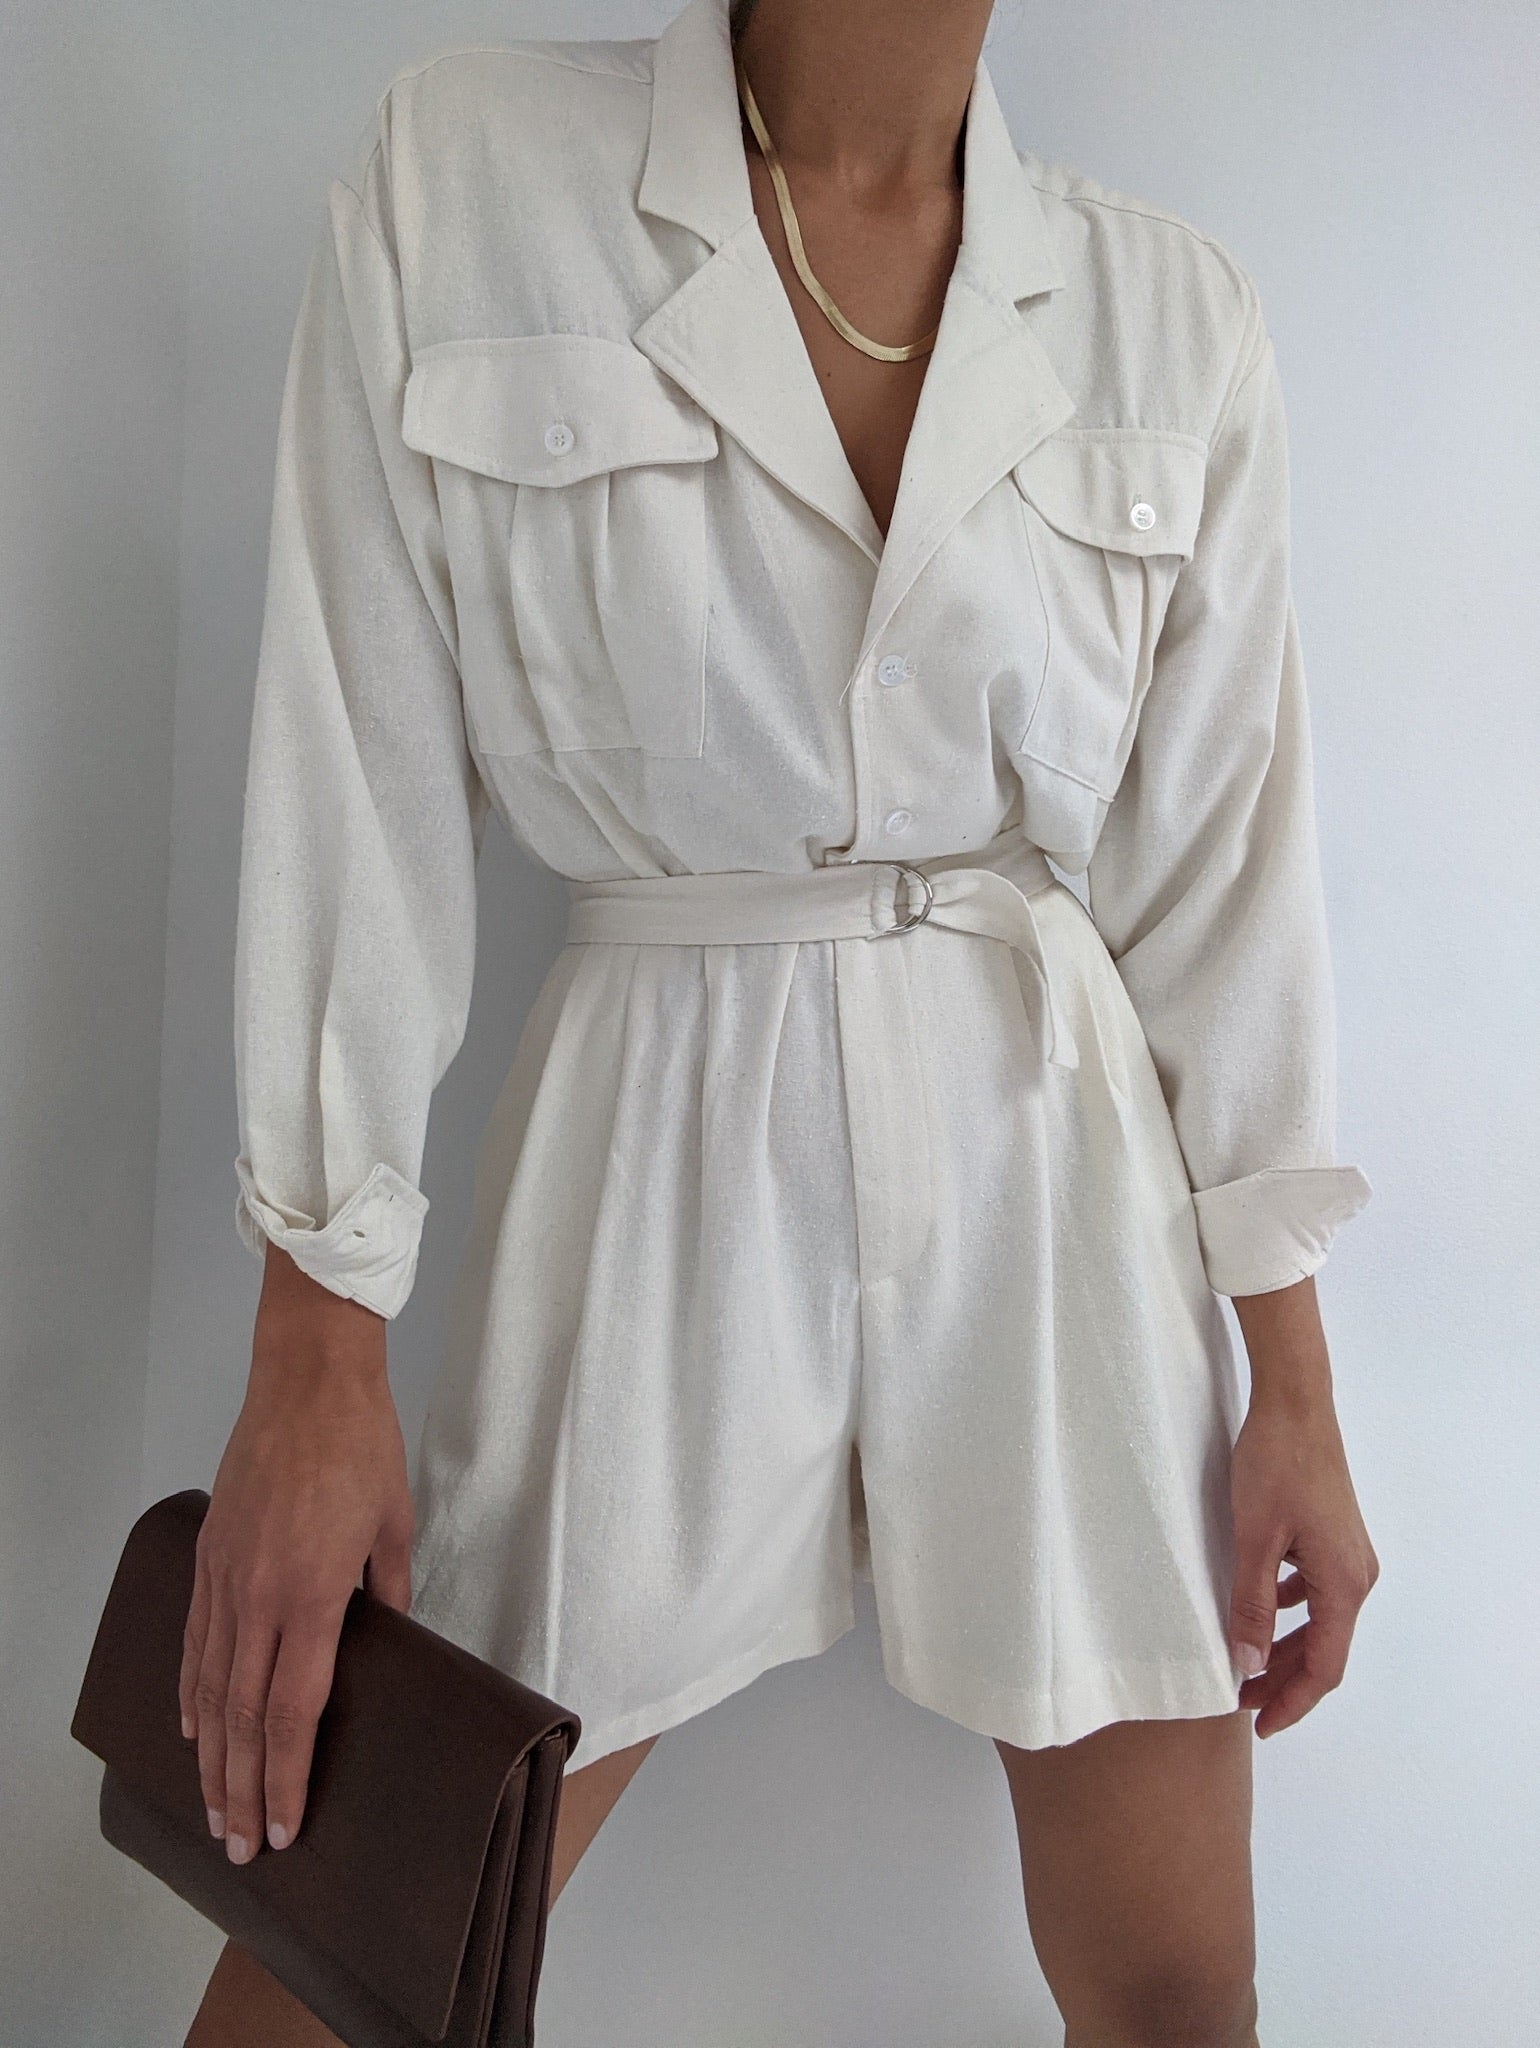 Na Nin Joey Raw Silk Jumpsuit / Available in Cream & Black